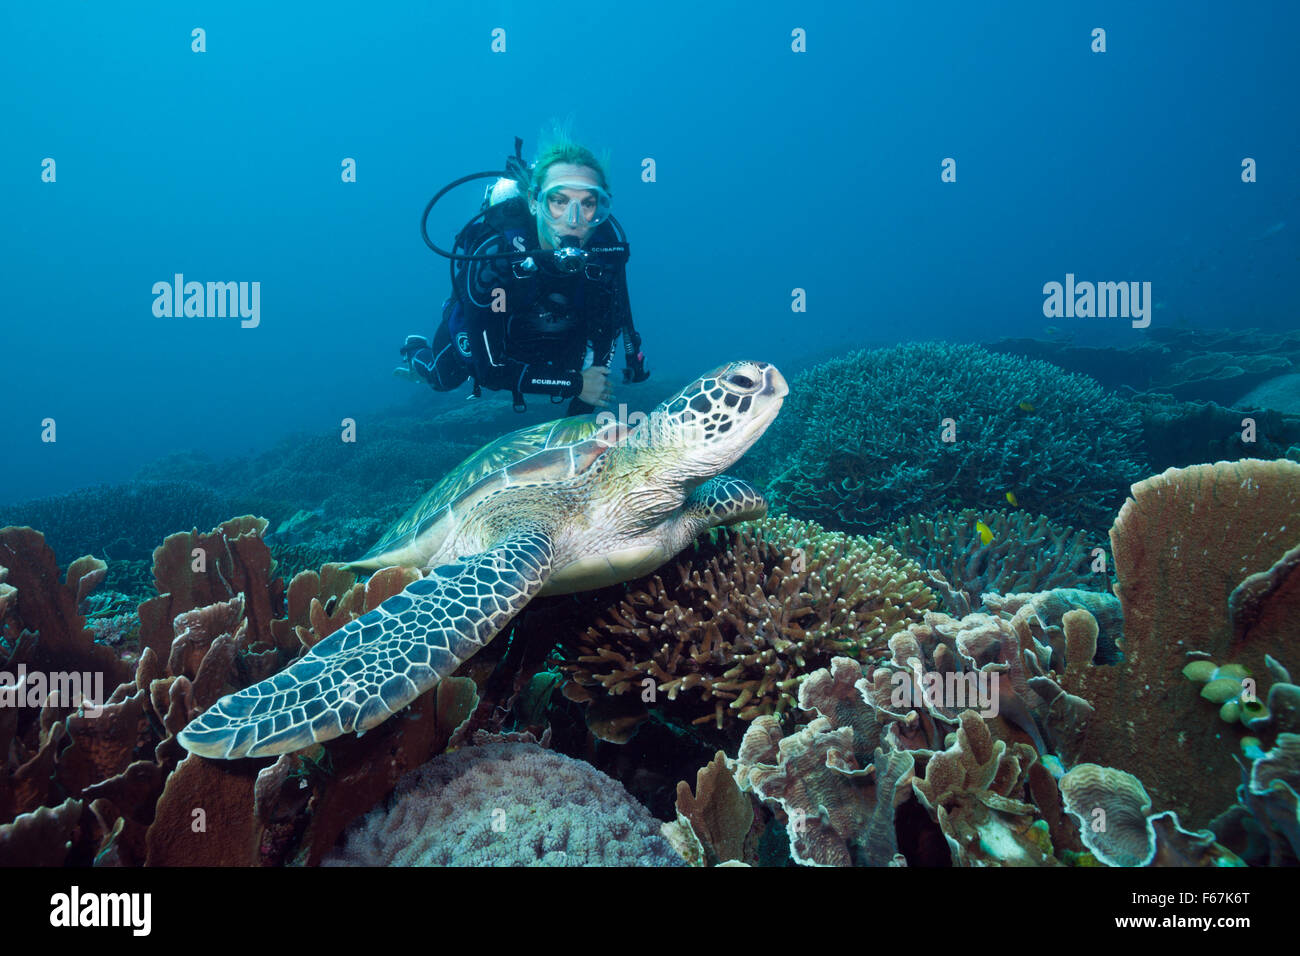 Green Sea Turtle and Scuba diver, Chelonia mydas, Komodo National Park, Indonesia - Stock Image